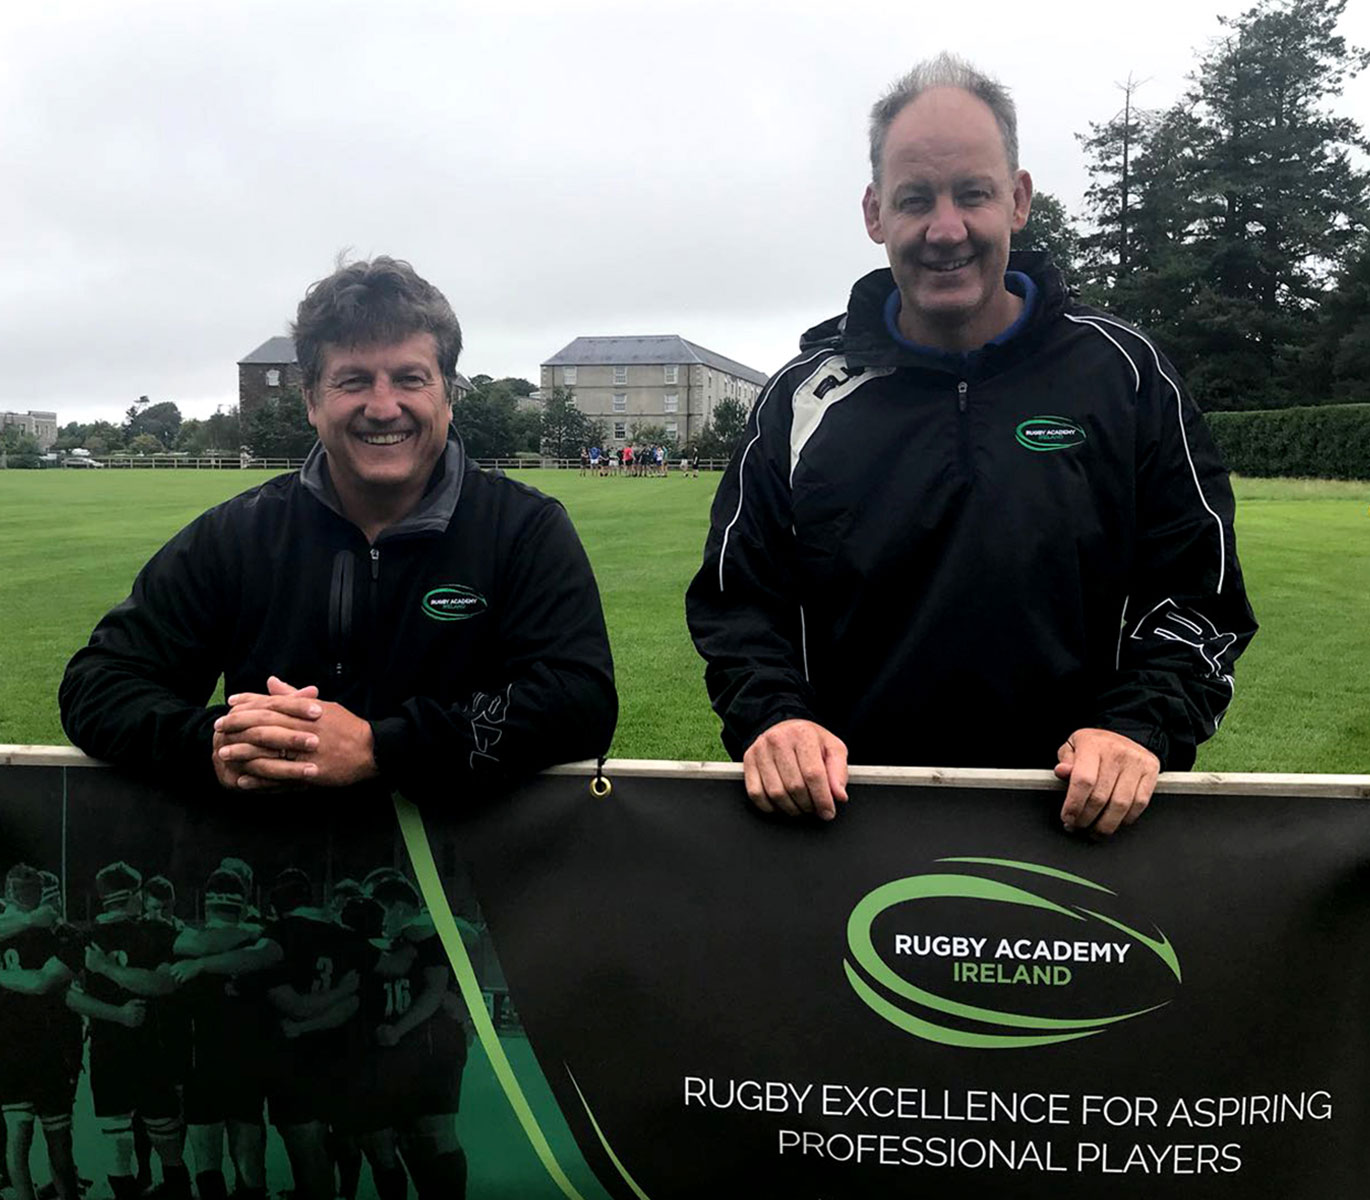 Founders of the Rugby Academy Ireland